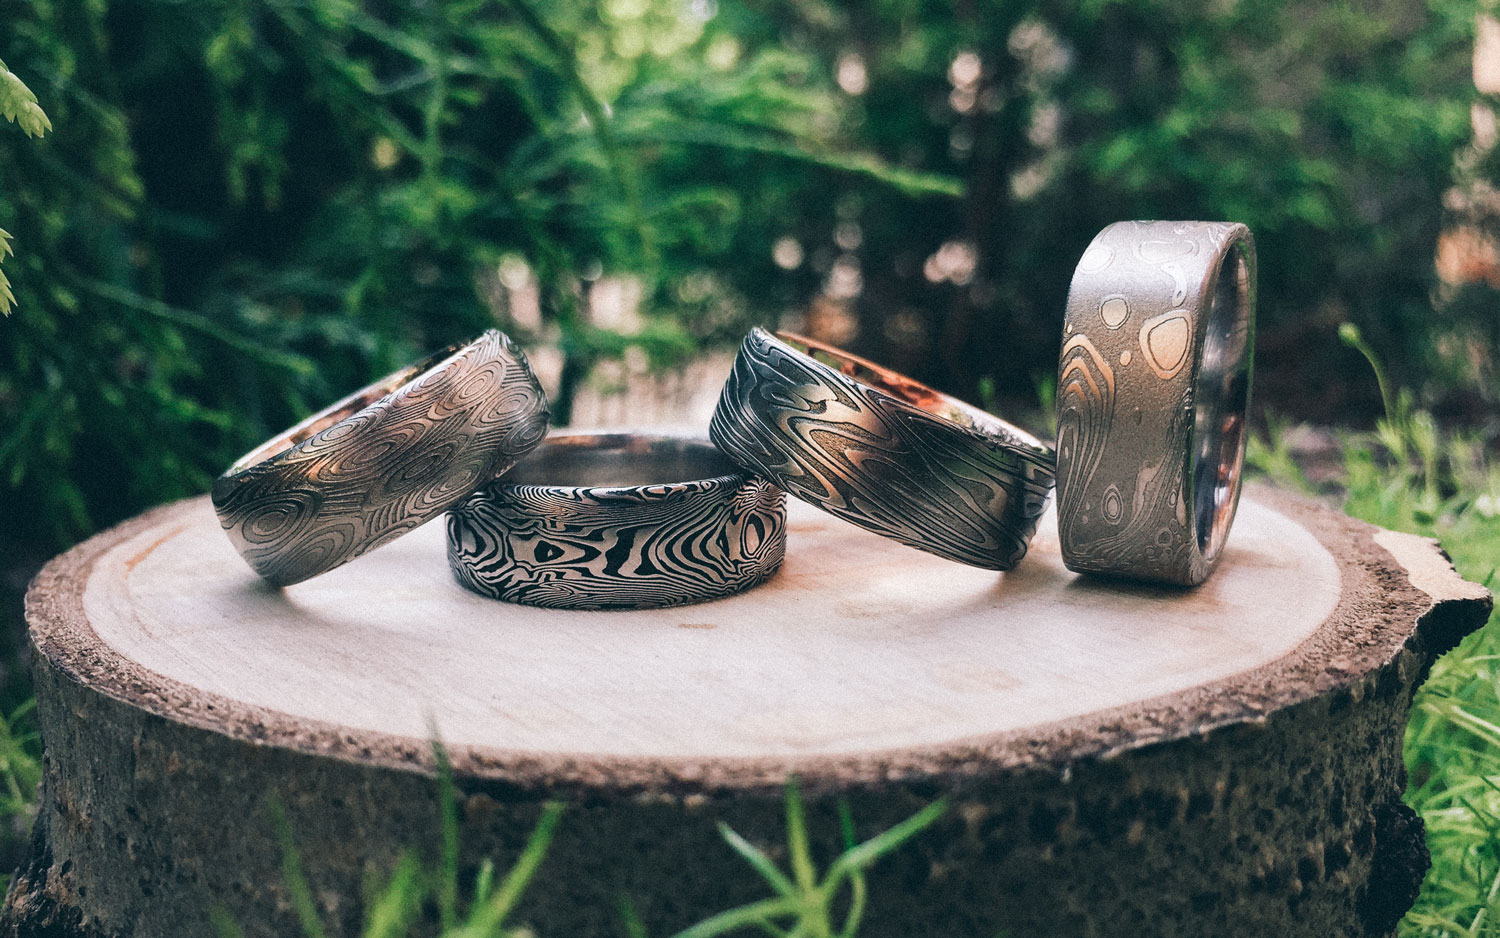 Damascus Steel Rings can have very unique and meaningful patterns.